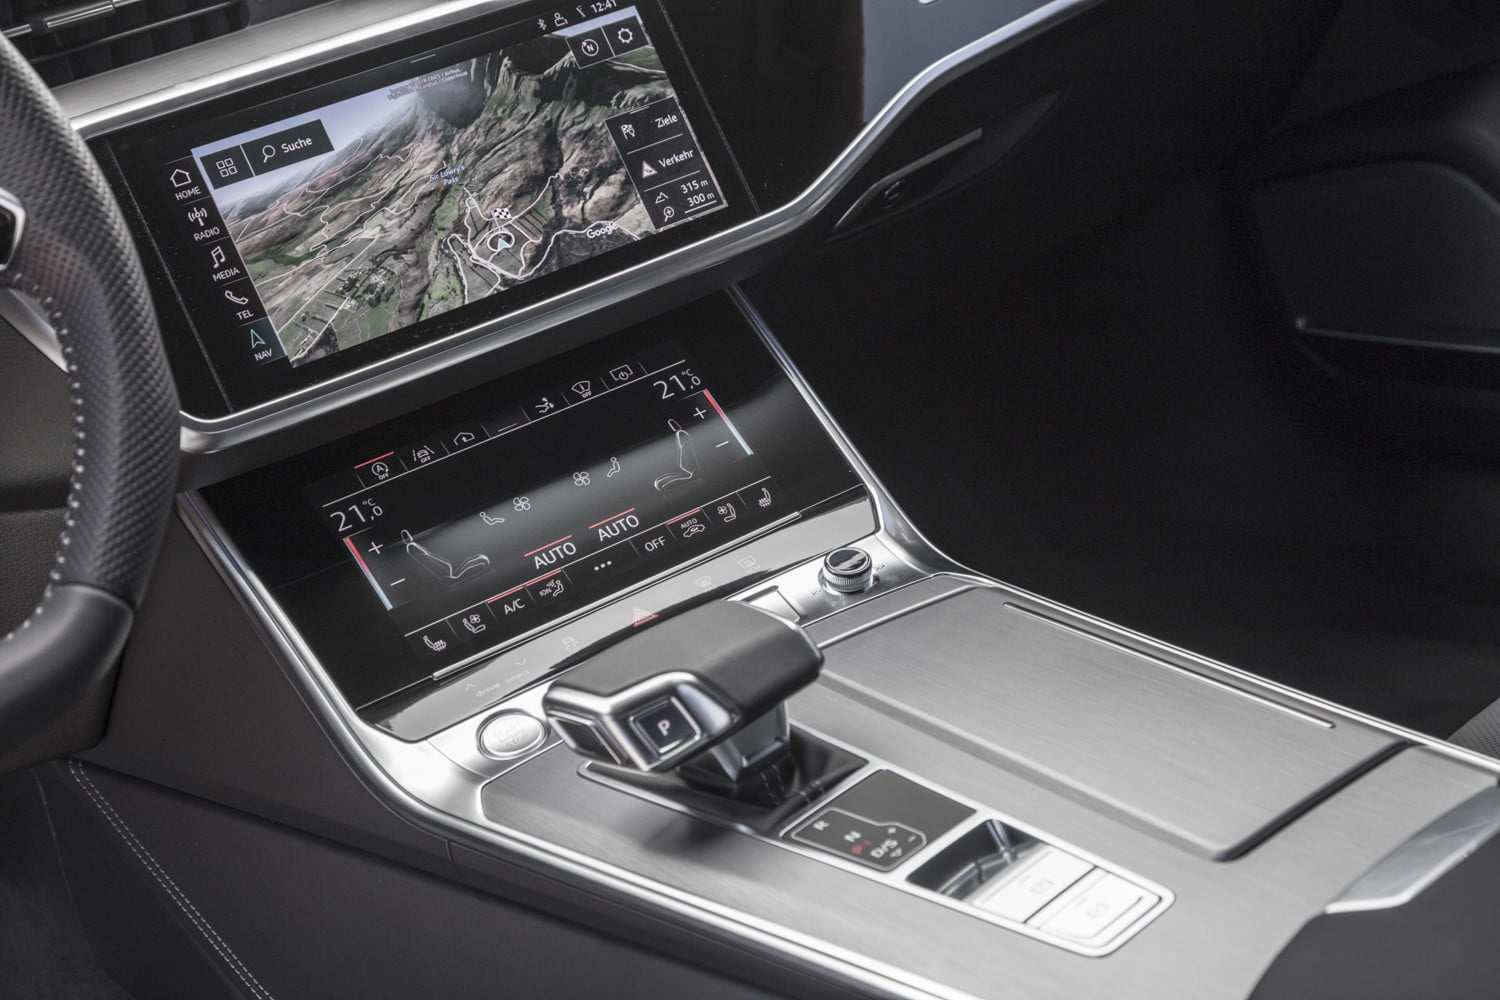 48 New Best New S7 Audi 2019 Interior Pricing by Best New S7 Audi 2019 Interior